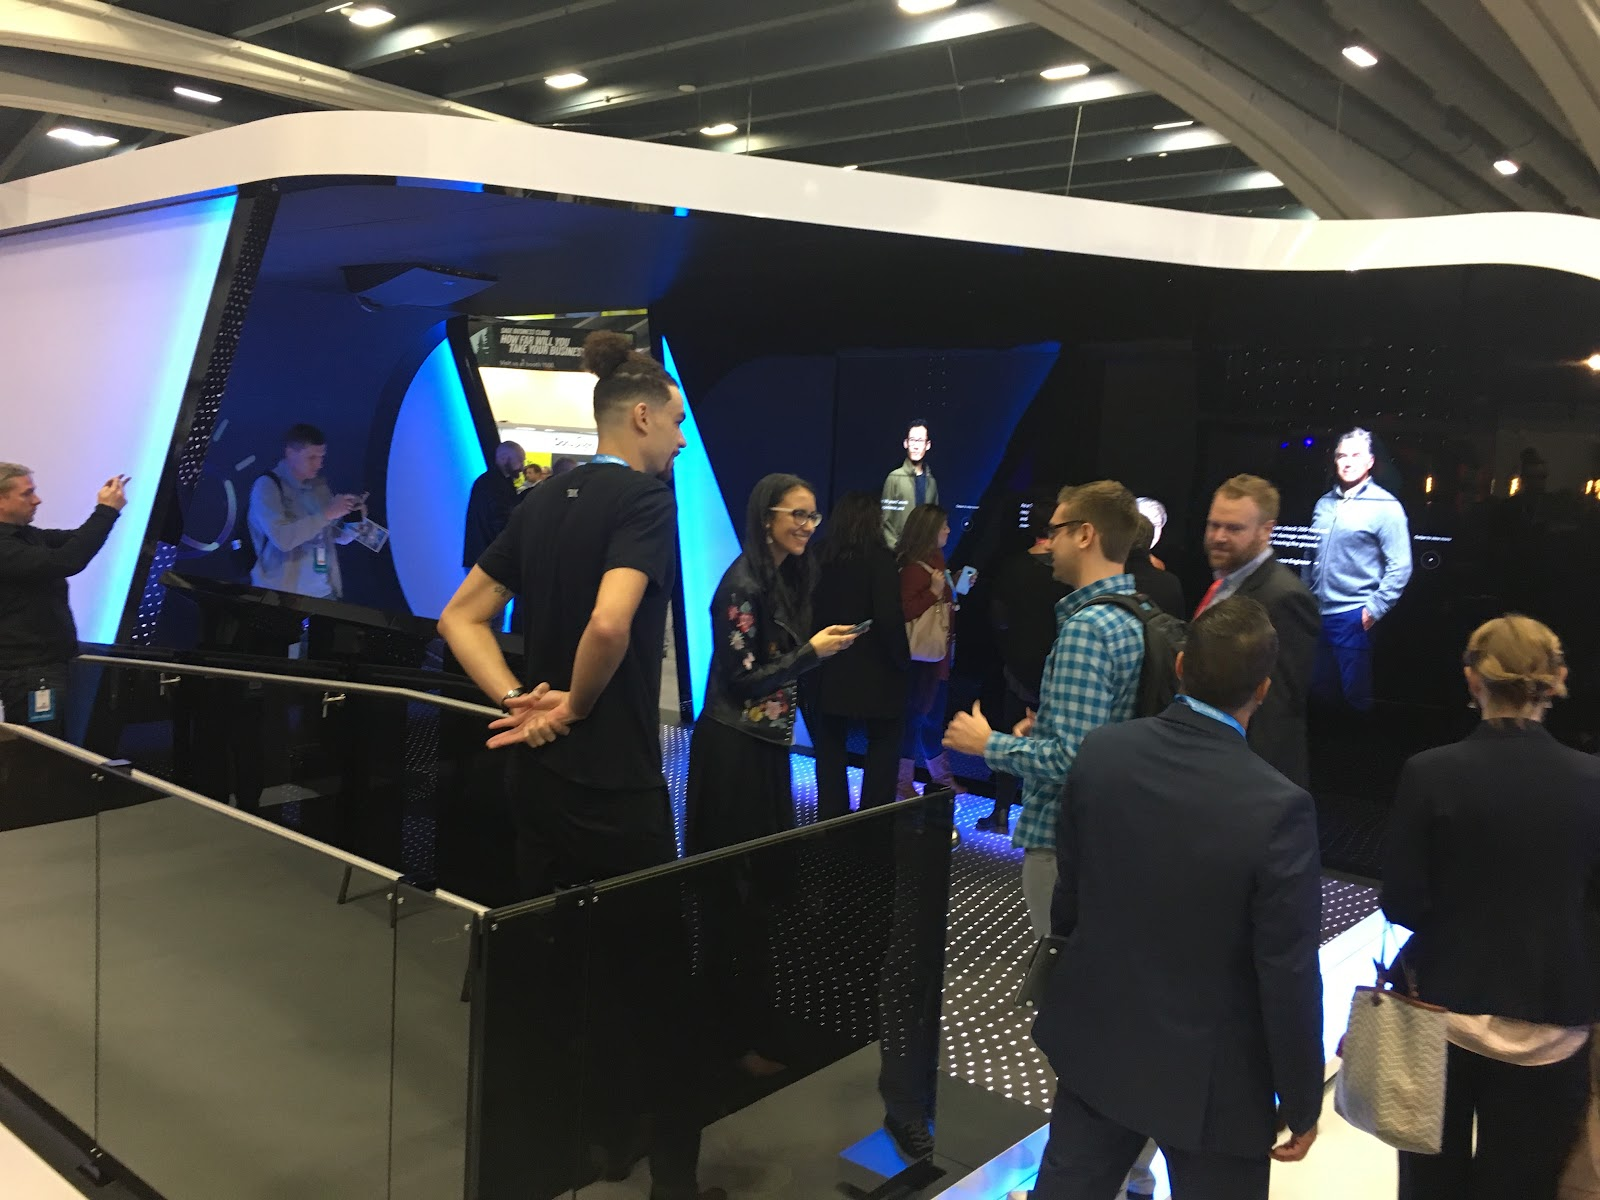 IBM:Bluewolf booth at Dreamforce 2017